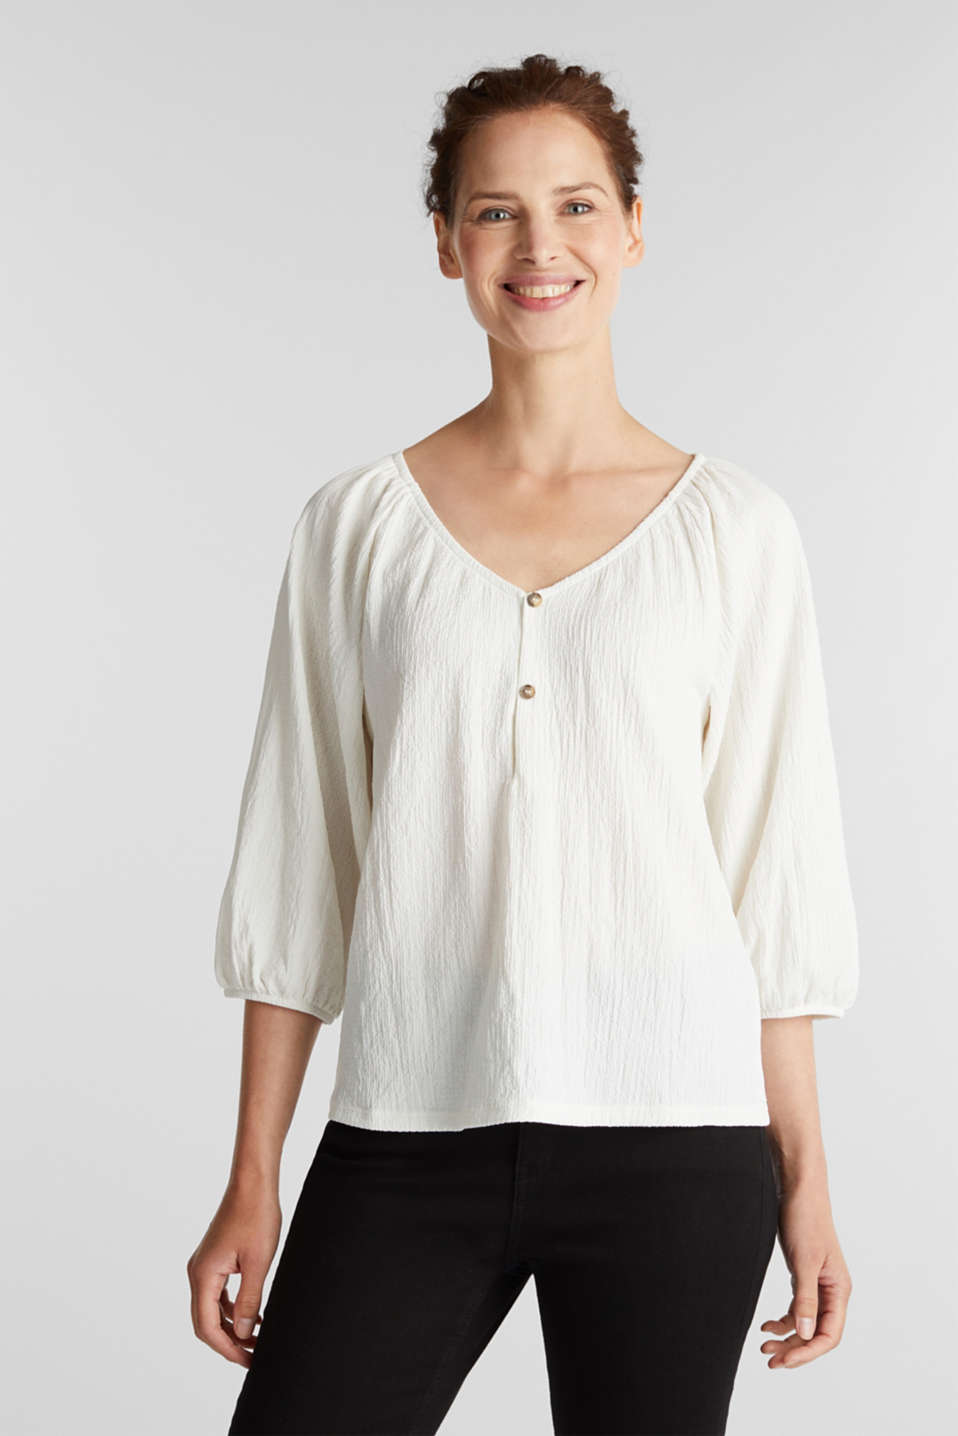 Esprit - Textured blouse top, recycled